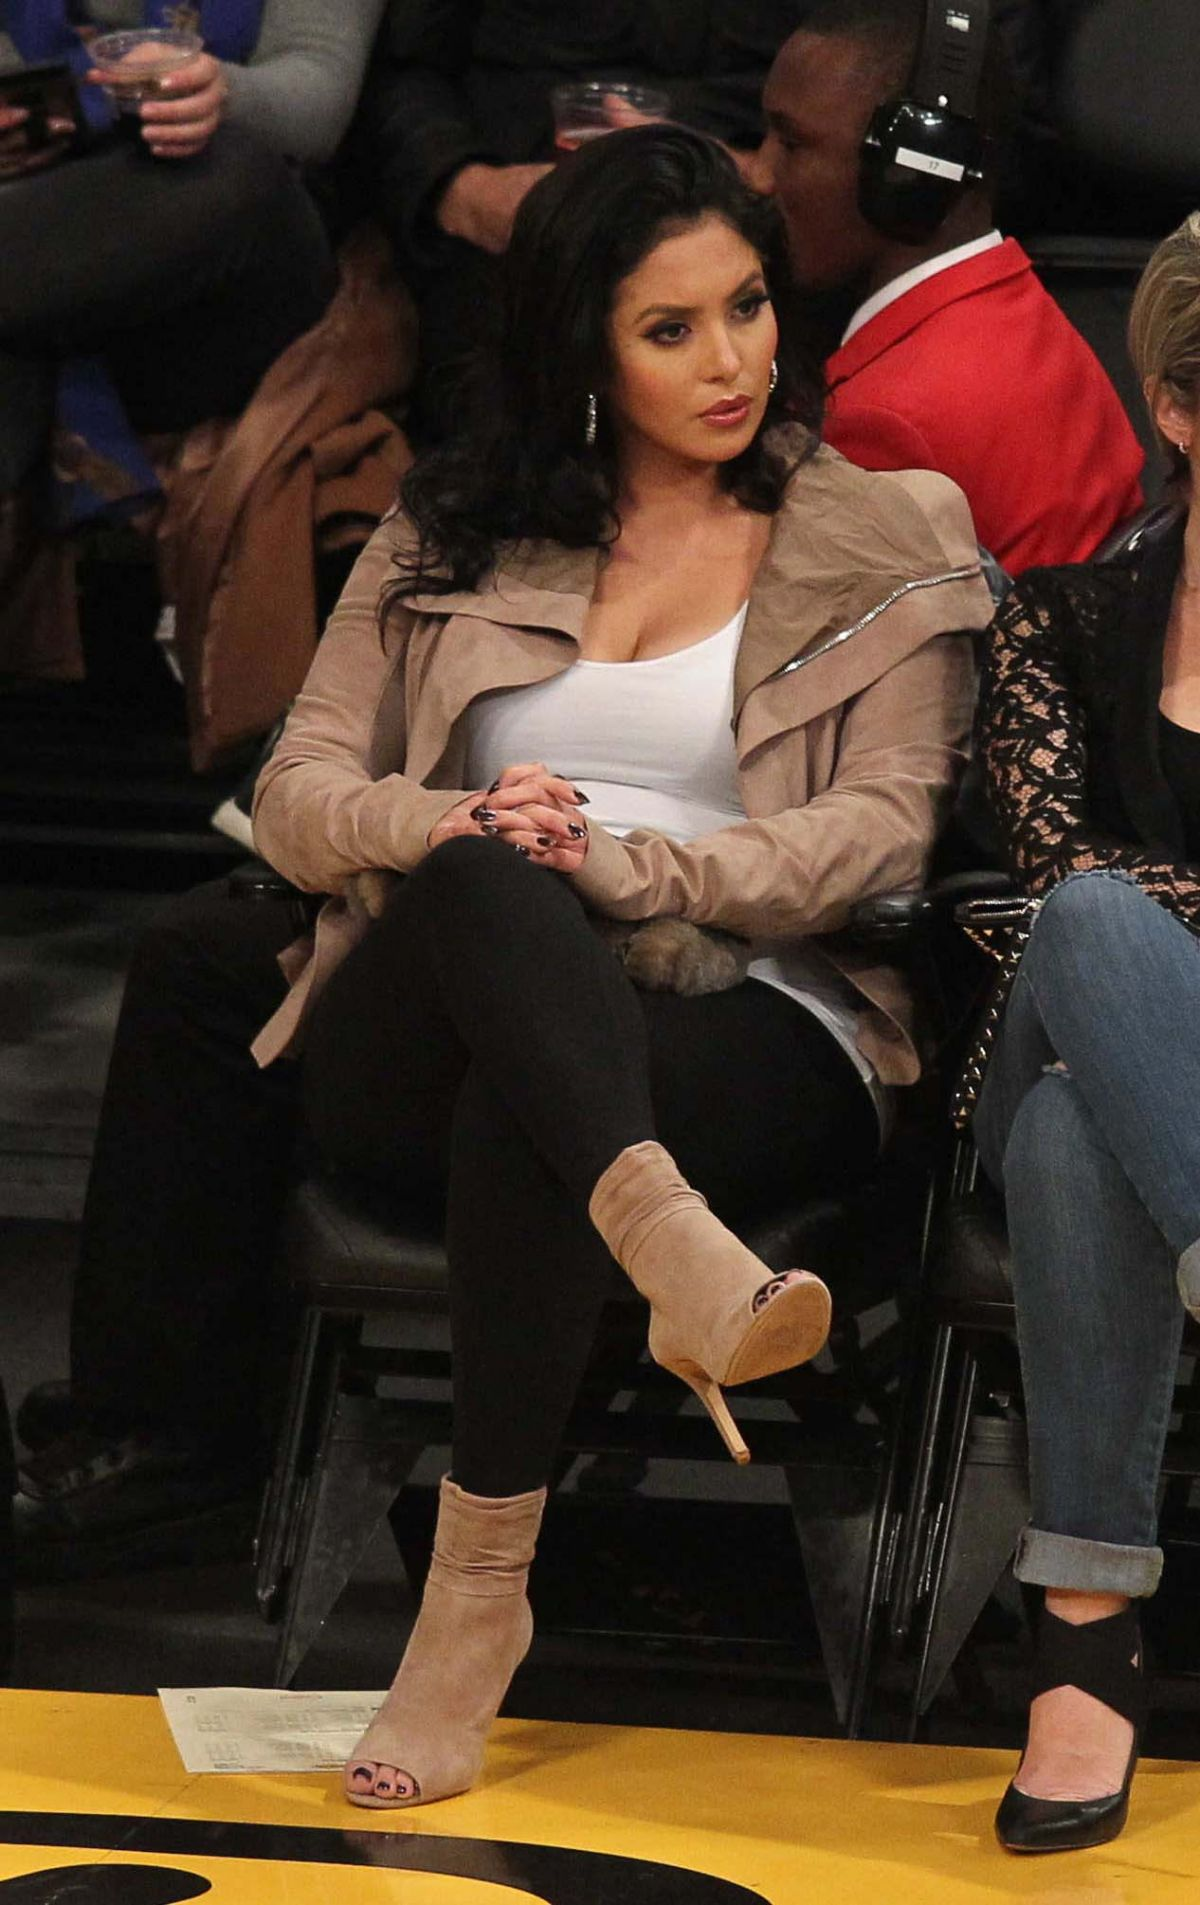 VANESSA BRYANT at a Lakers Game 01/12/2015